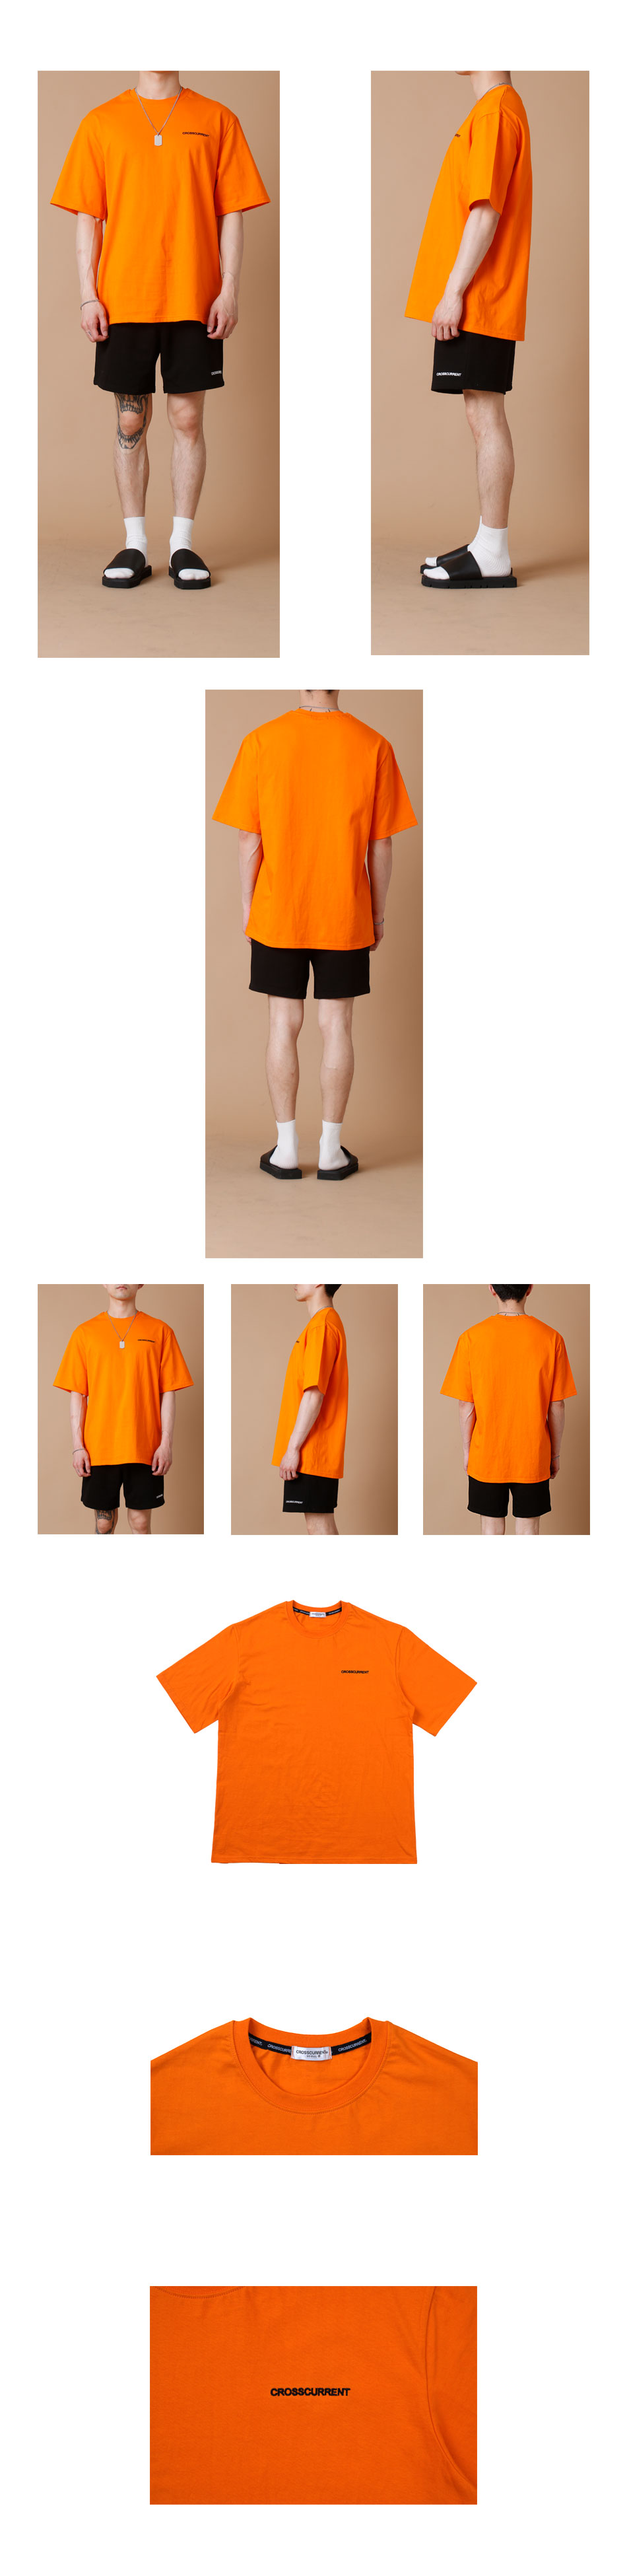 #crct00002-CCT-Small-Logo-Short-Sleeve-오렌지950.jpg